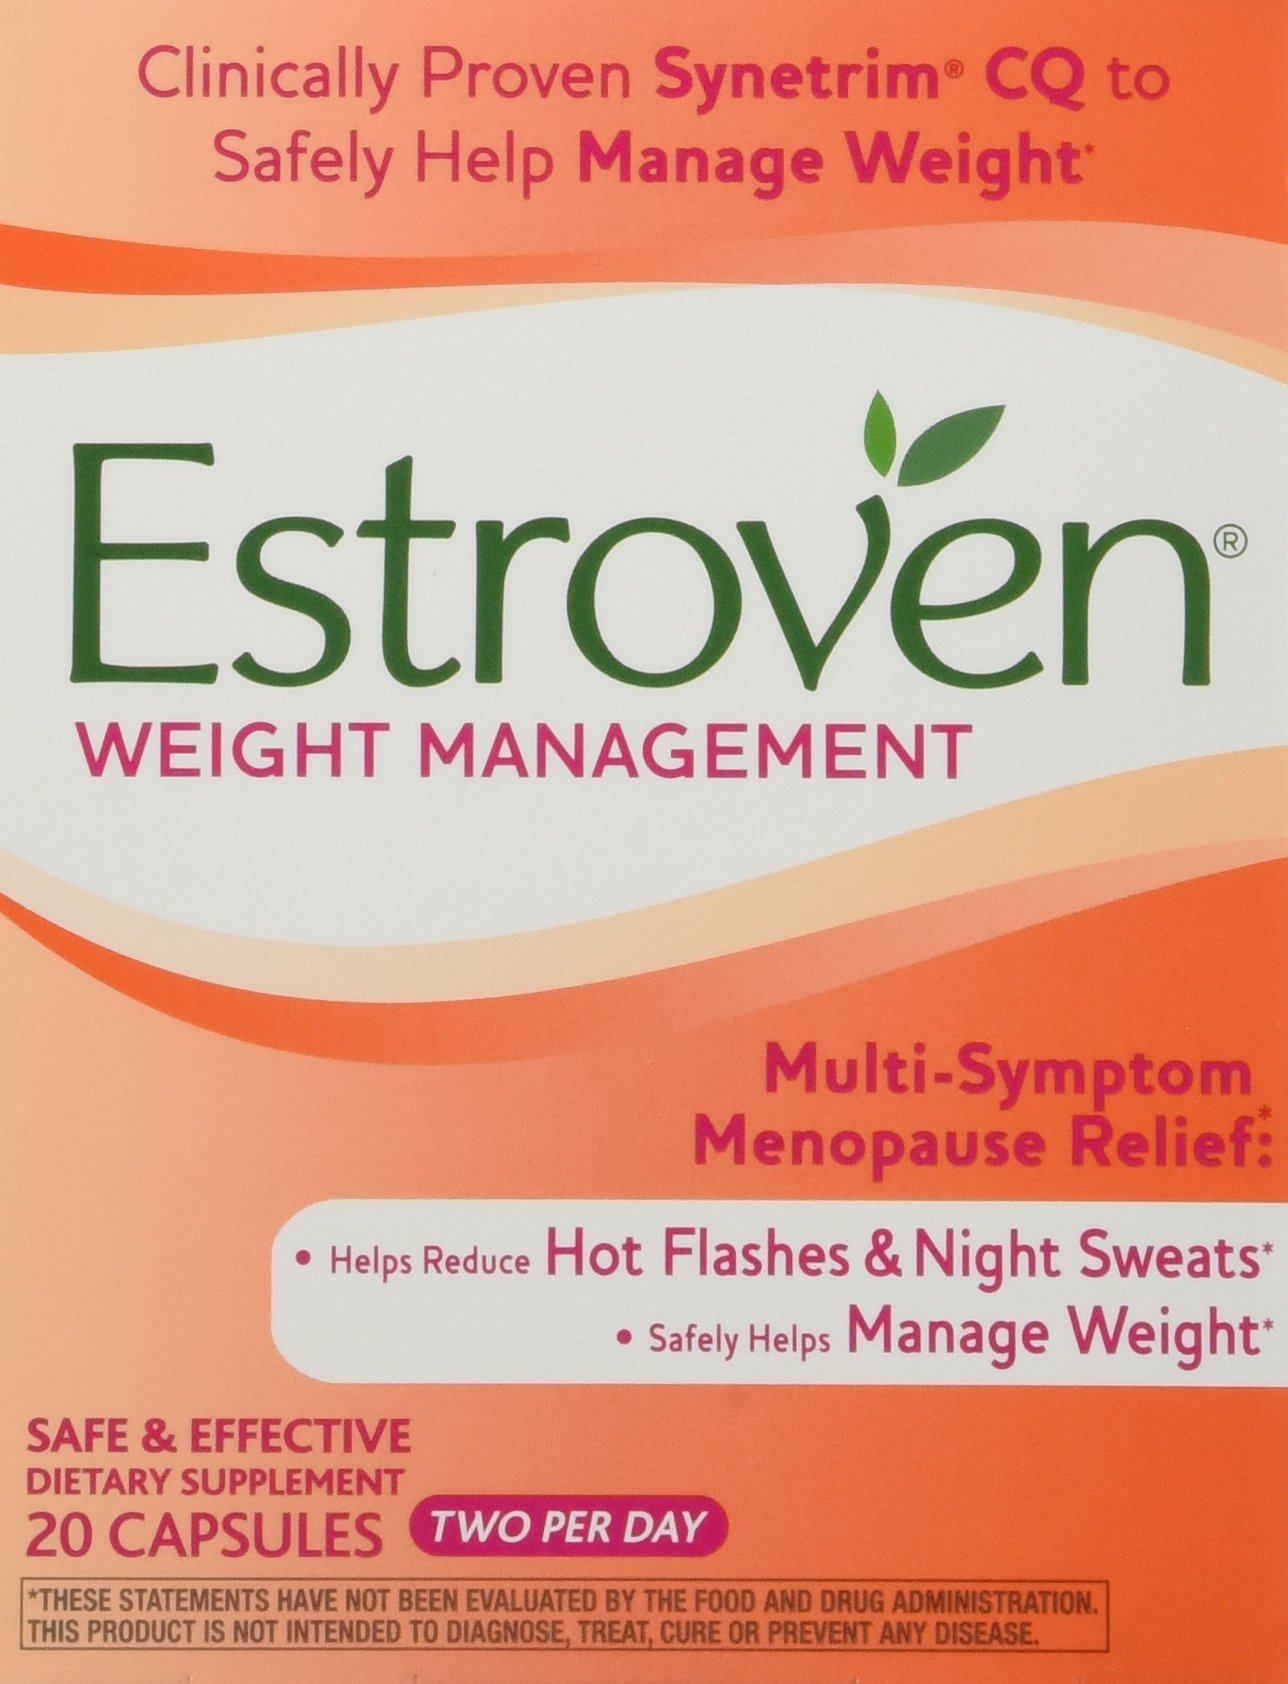 Estroven Weight Management 120 Capsues, 2 Per Day